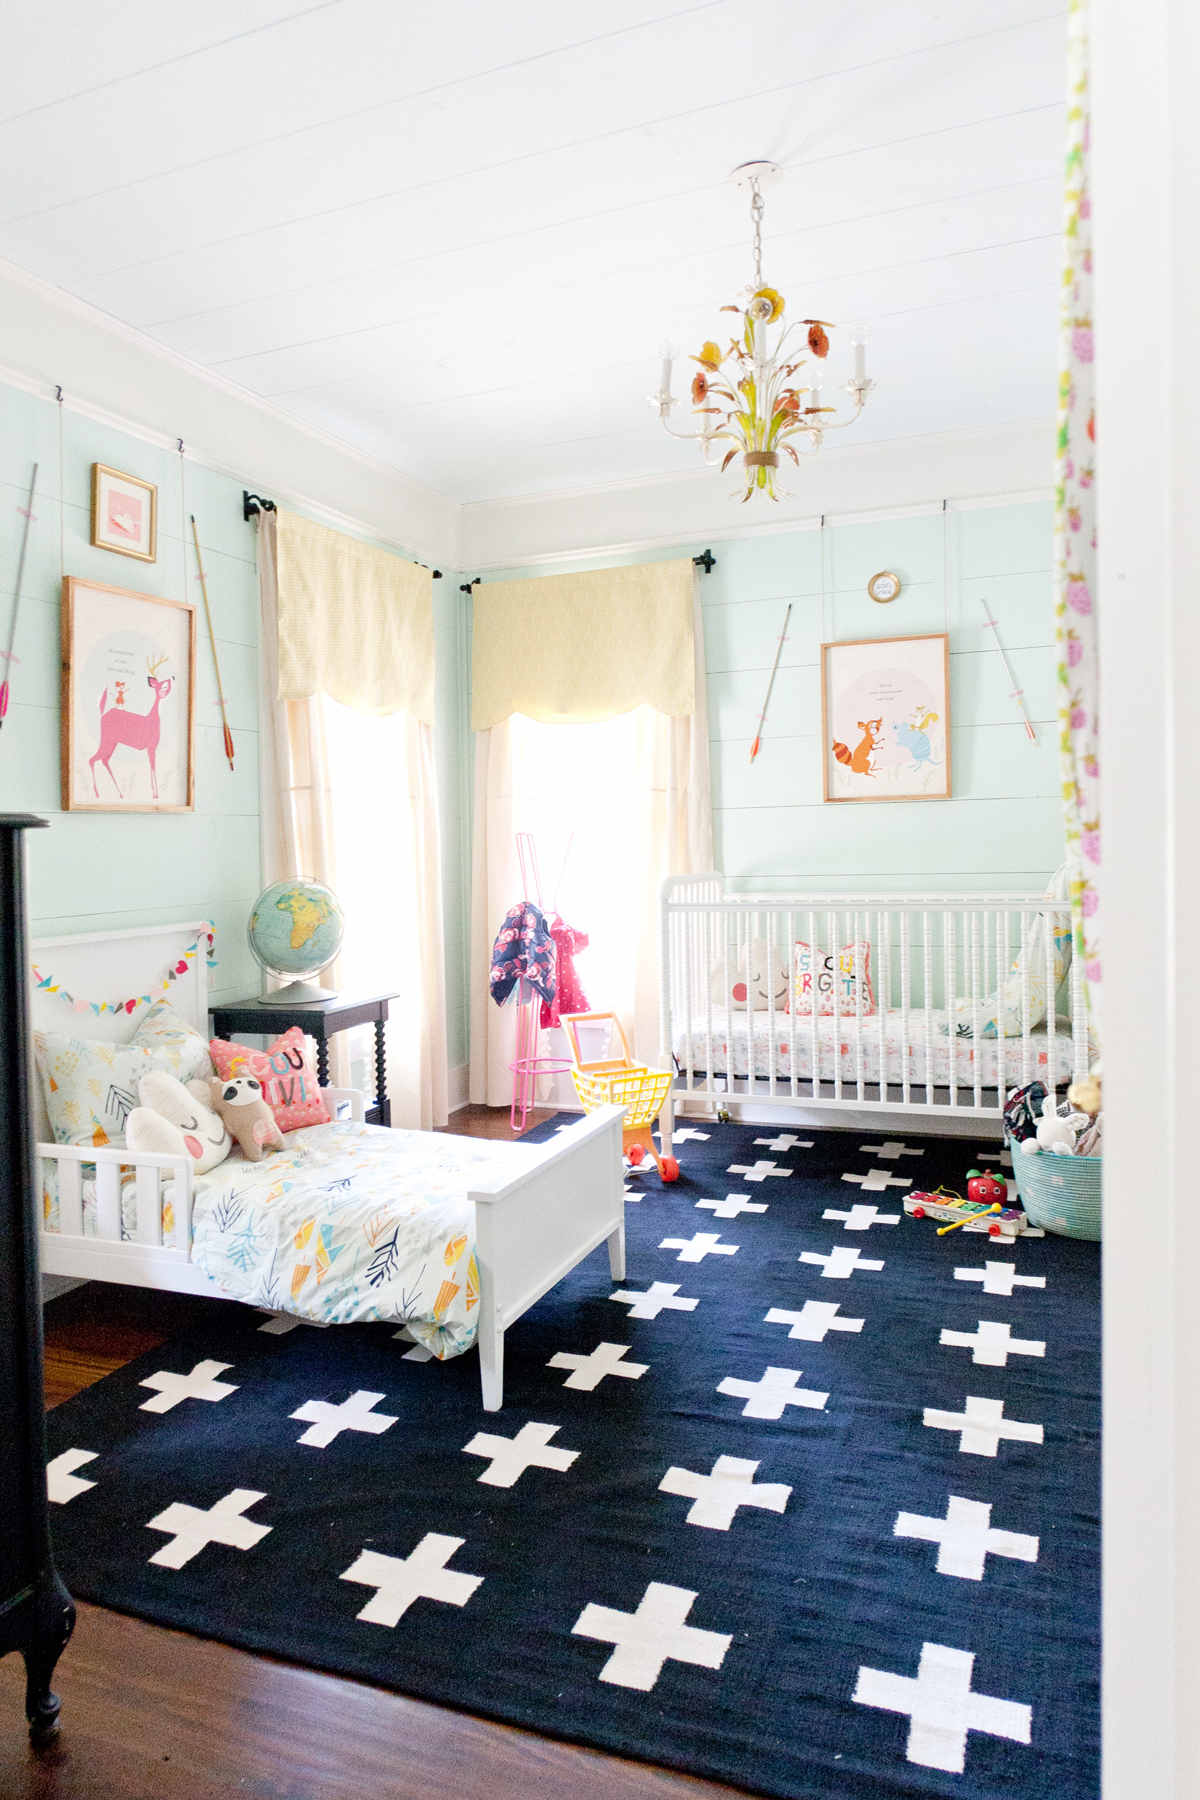 The Kidsroom Shared Room Inspiration Lay Baby Lay Lay Baby Lay